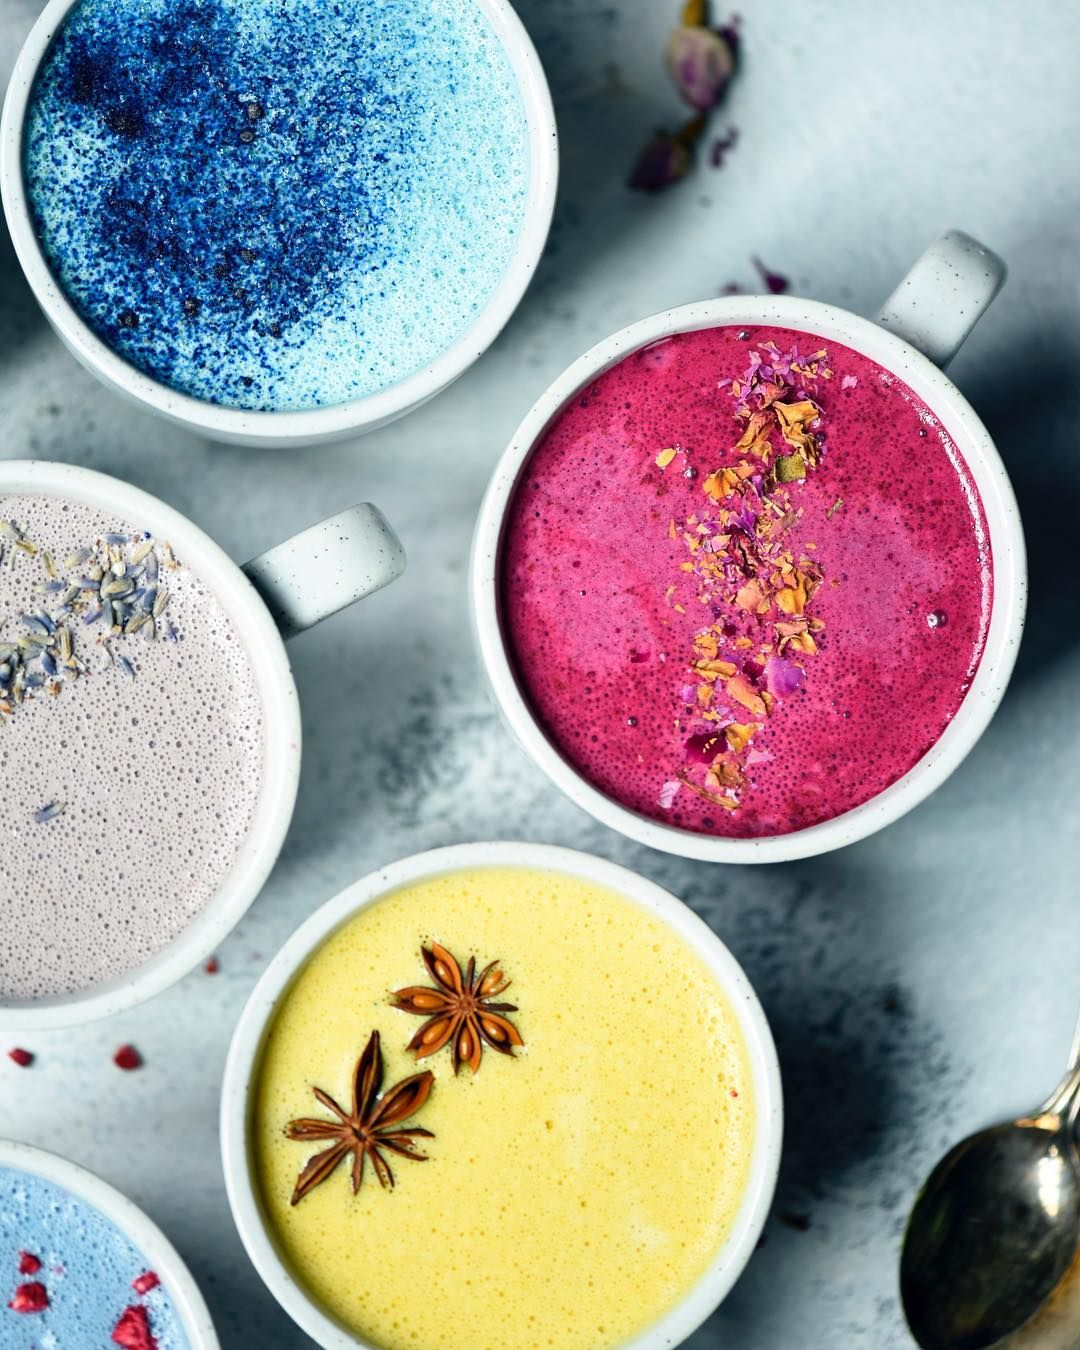 Colorful Lattes = Cashew Milk Used As Base Mix With Each